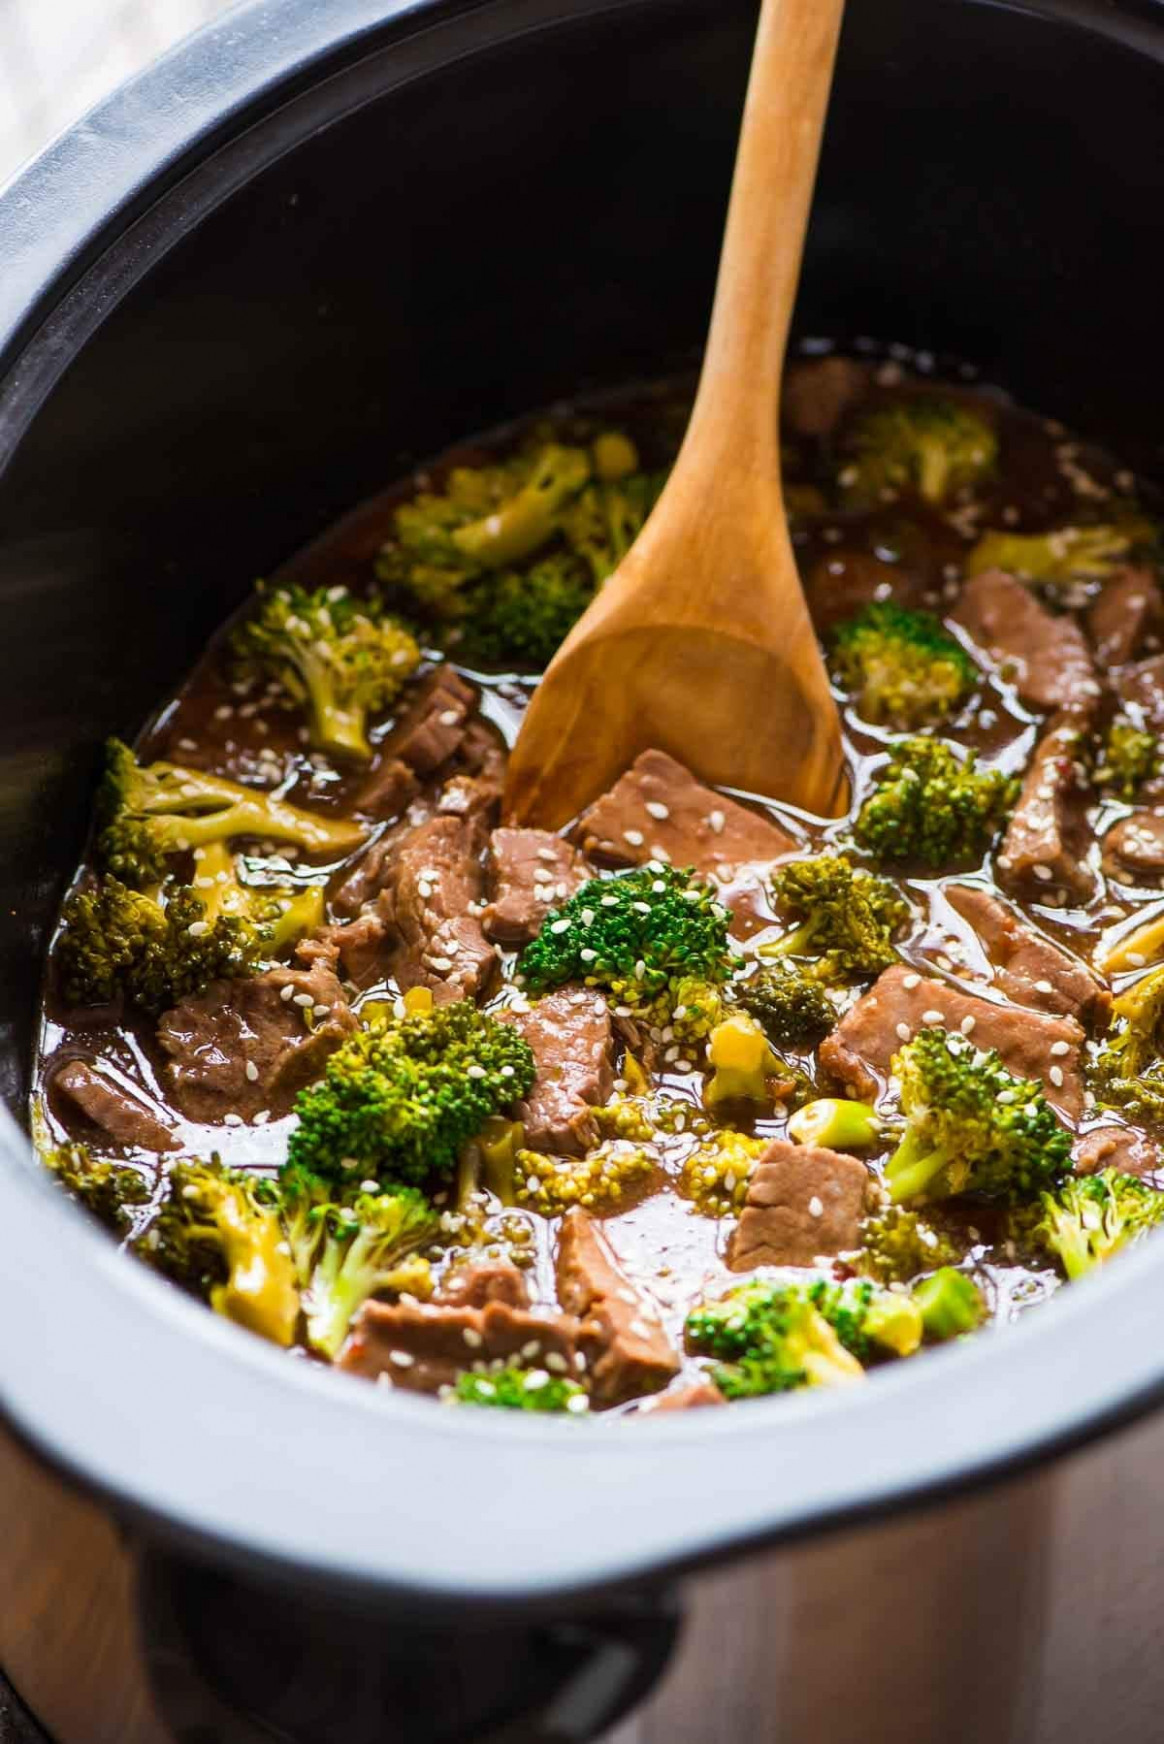 Crockpot Beef and Broccoli - healthy recipes slow cooker